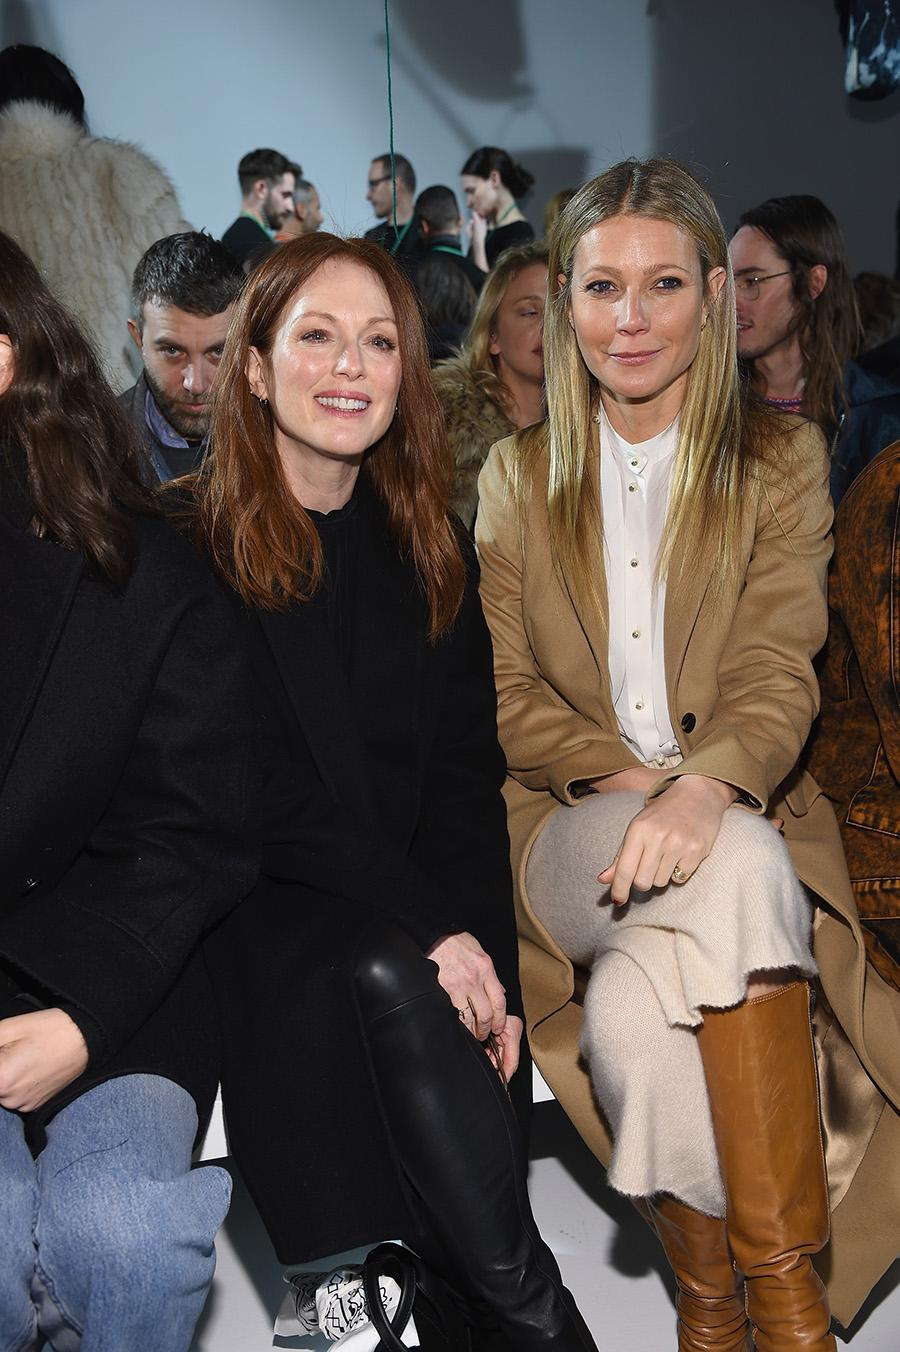 """<p>Actresses Julianne Moore and Gwyneth Paltrow posed together in the front row at the show. Paltrow, who <a href=""""https://www.instagram.com/p/BQVdVVrFMhR/?taken-by=gwynethpaltrow"""" rel=""""nofollow noopener"""" target=""""_blank"""" data-ylk=""""slk:shared on Instagram"""" class=""""link rapid-noclick-resp"""">shared on Instagram</a> that she hasn't been to fashion week in """"yeeears,"""" stuck with neutrals, while Moore opted for an all-black look. (Photo: Getty Images) </p>"""